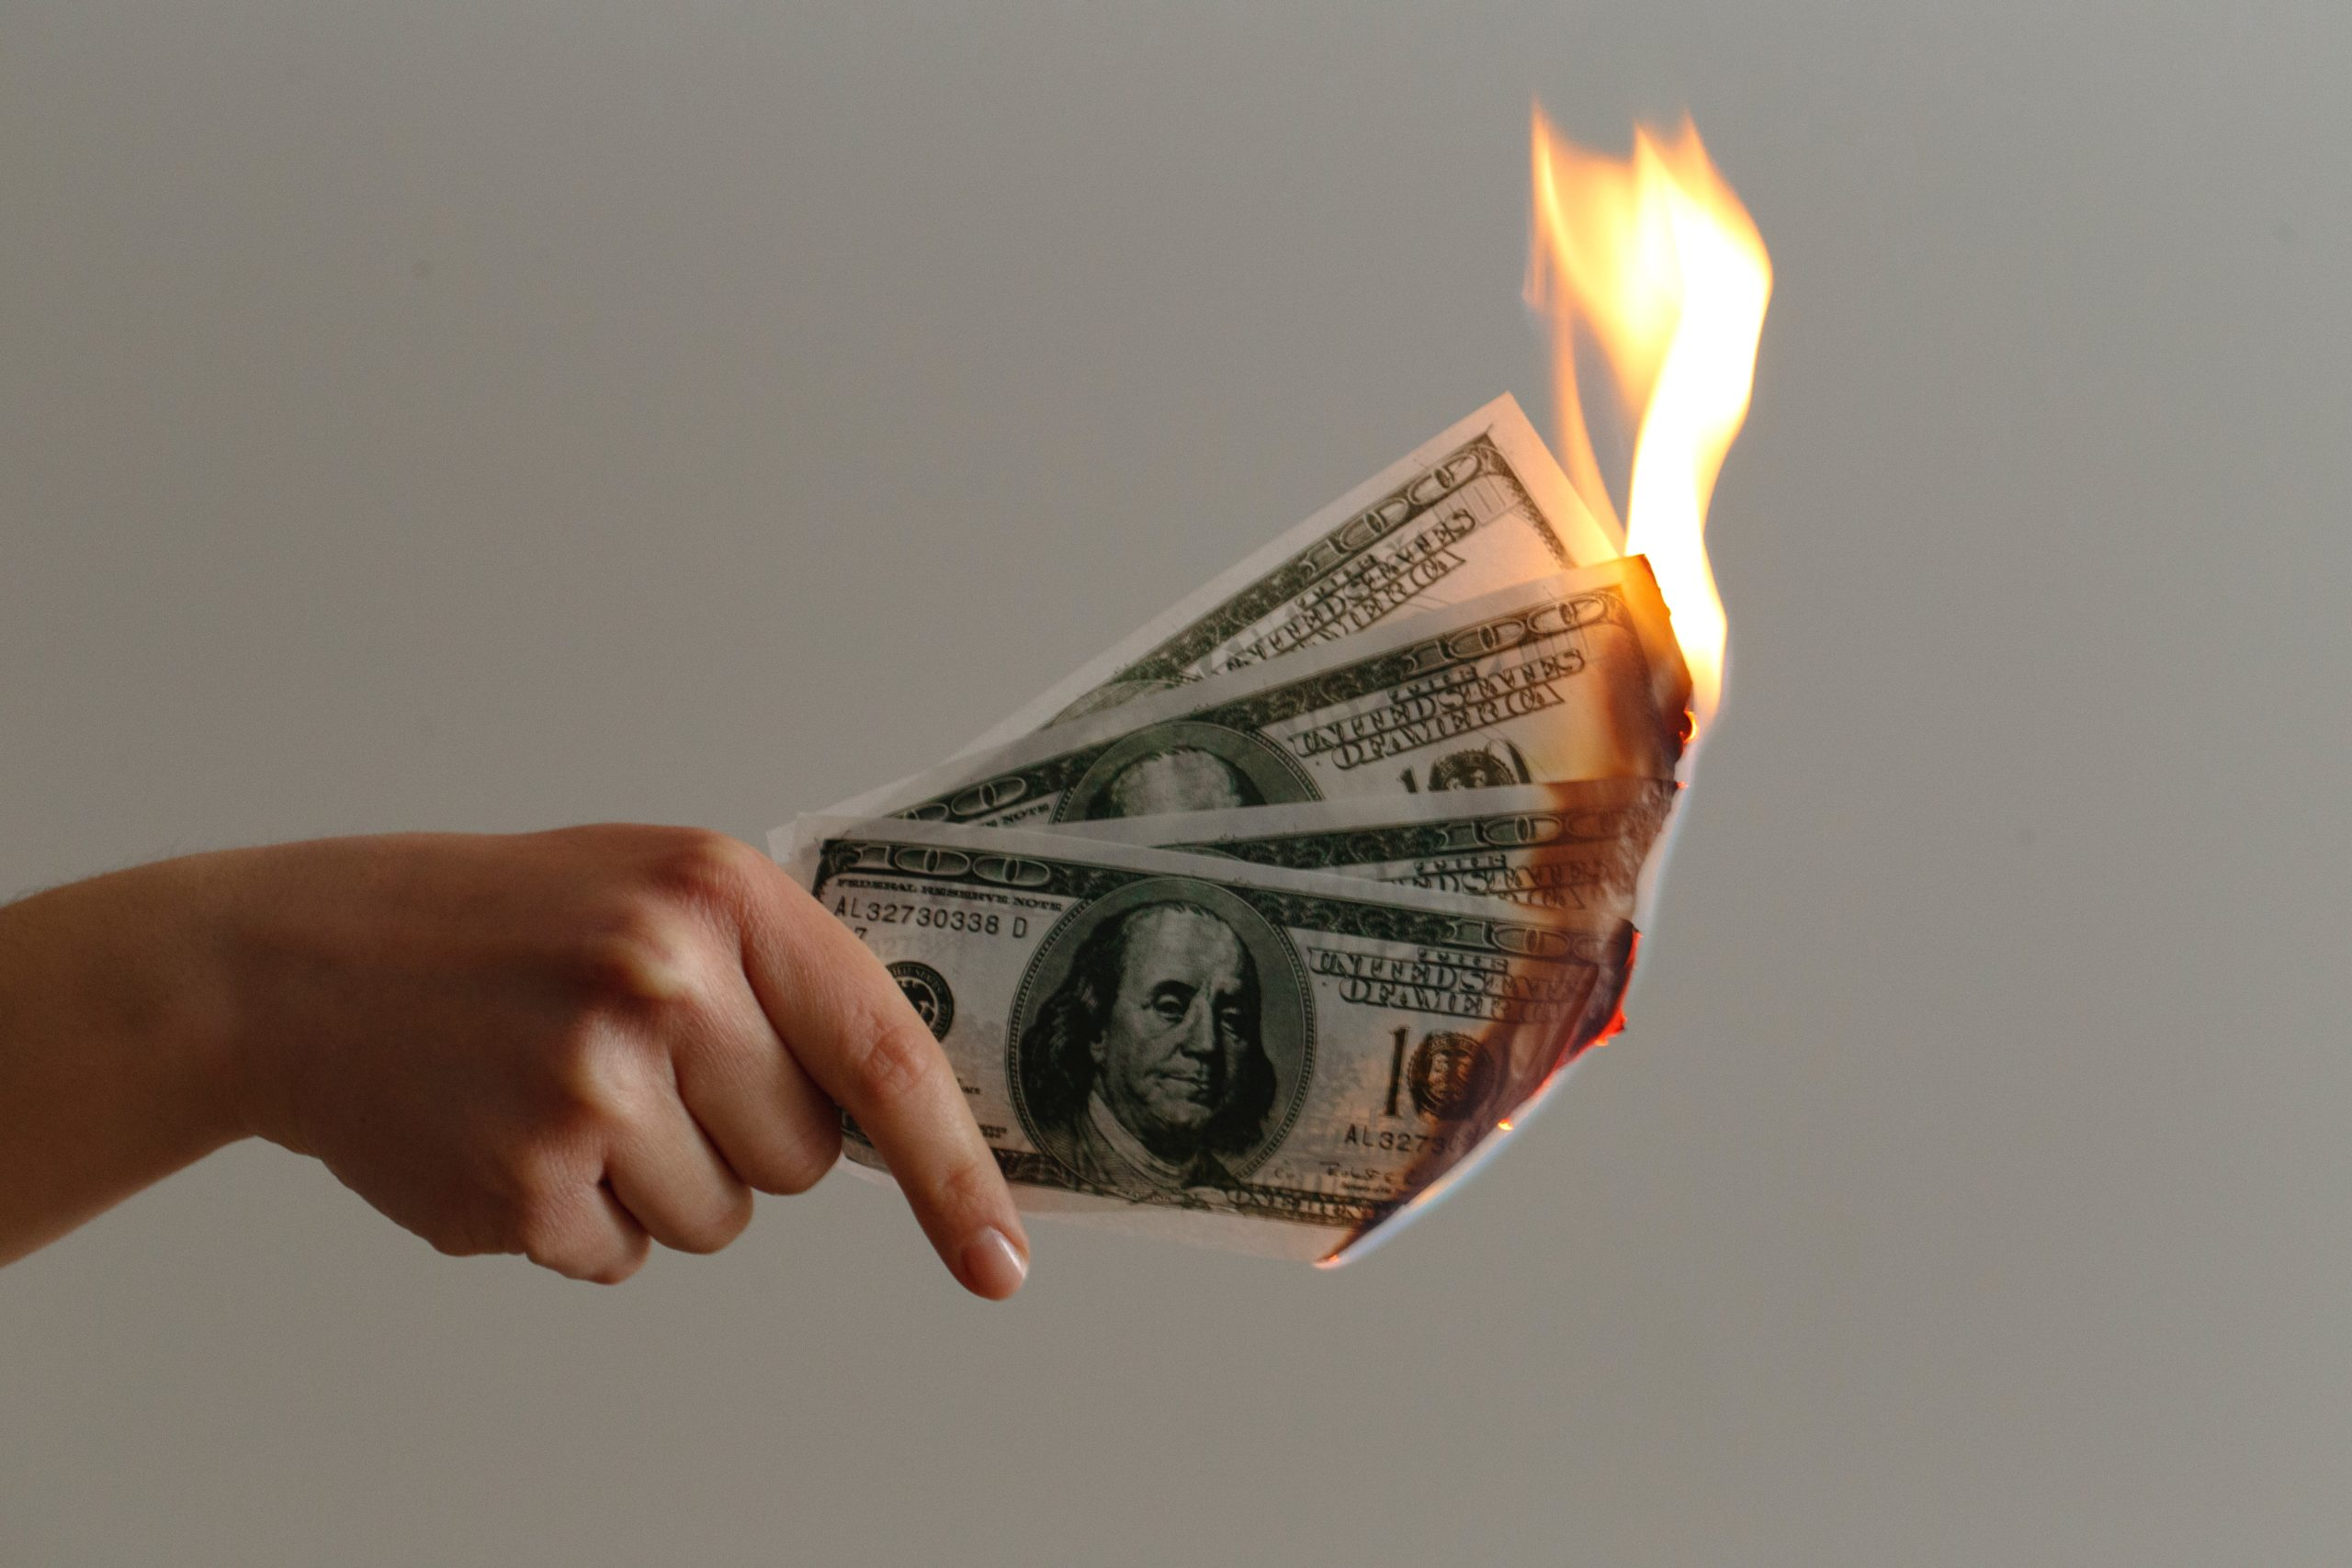 A photo of three $100 bills on fire, signifying the way that small businesses waste money.